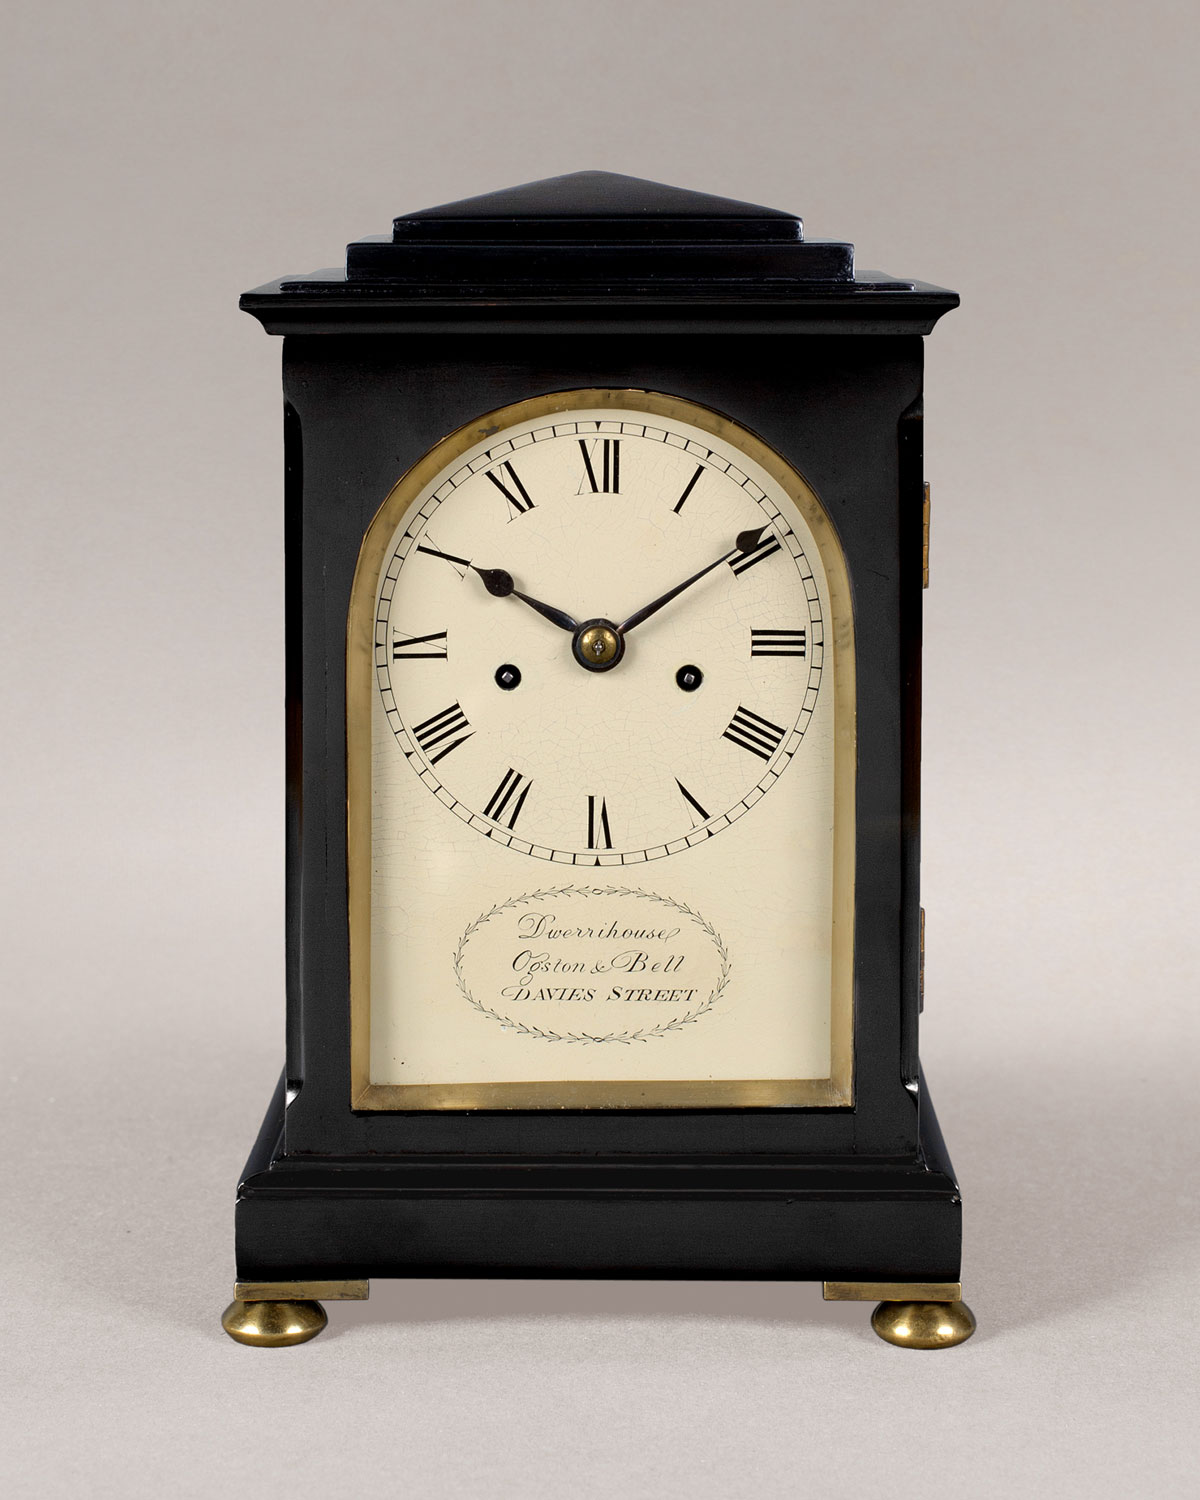 DWERRIHOUSE, OGSTON & BELL. A fine William IV period ebonised mantel clock